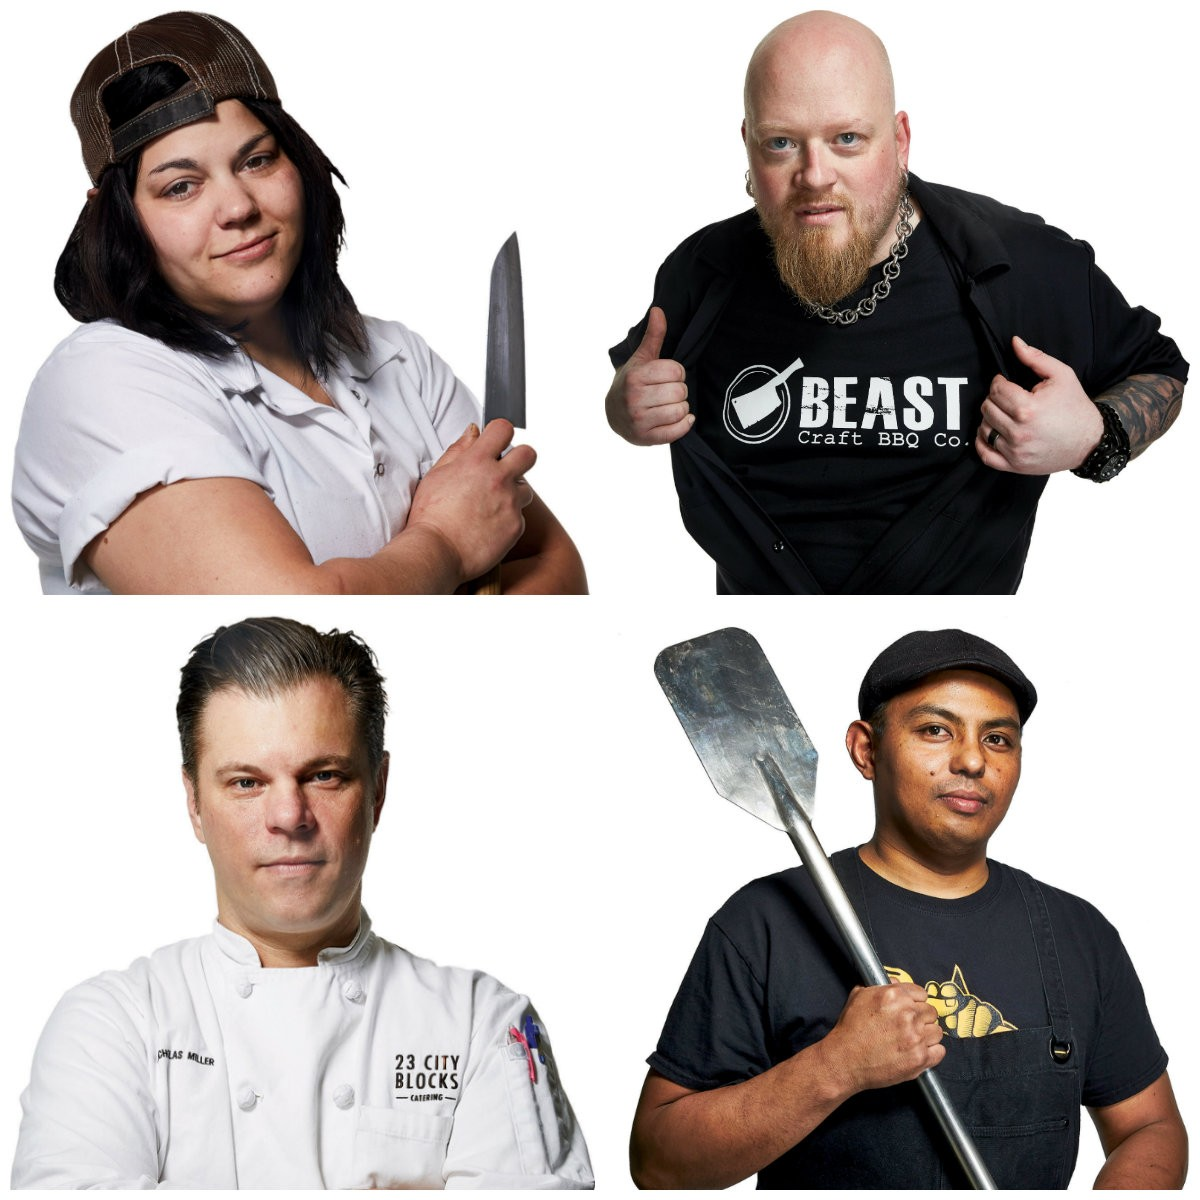 Iron Fork Unplugged Features Four Chefs at the Top of Their Game ...